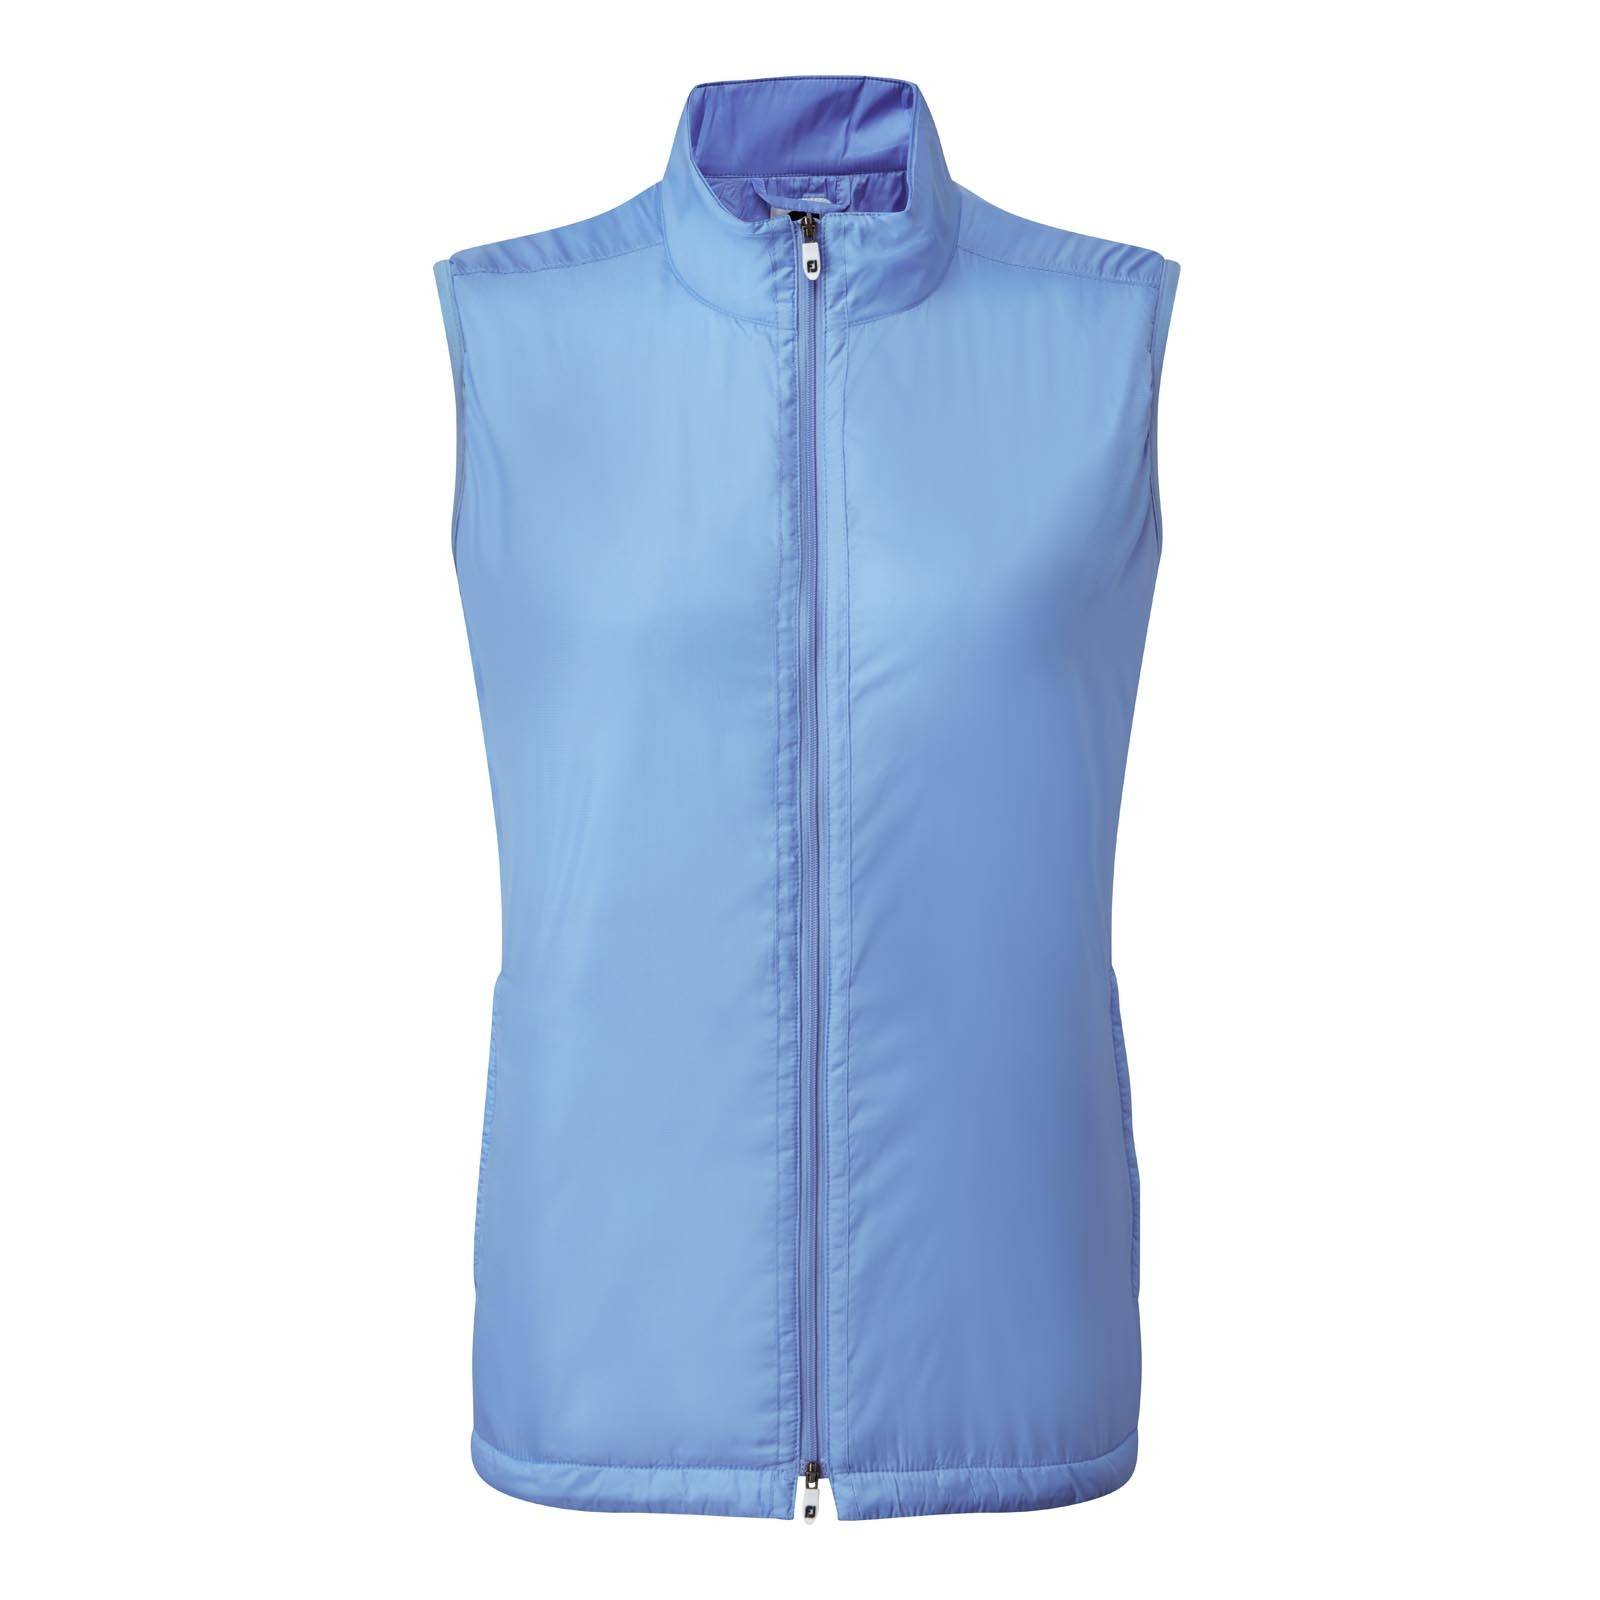 Footjoy Womens Lightweight Thermal Insulated Vests